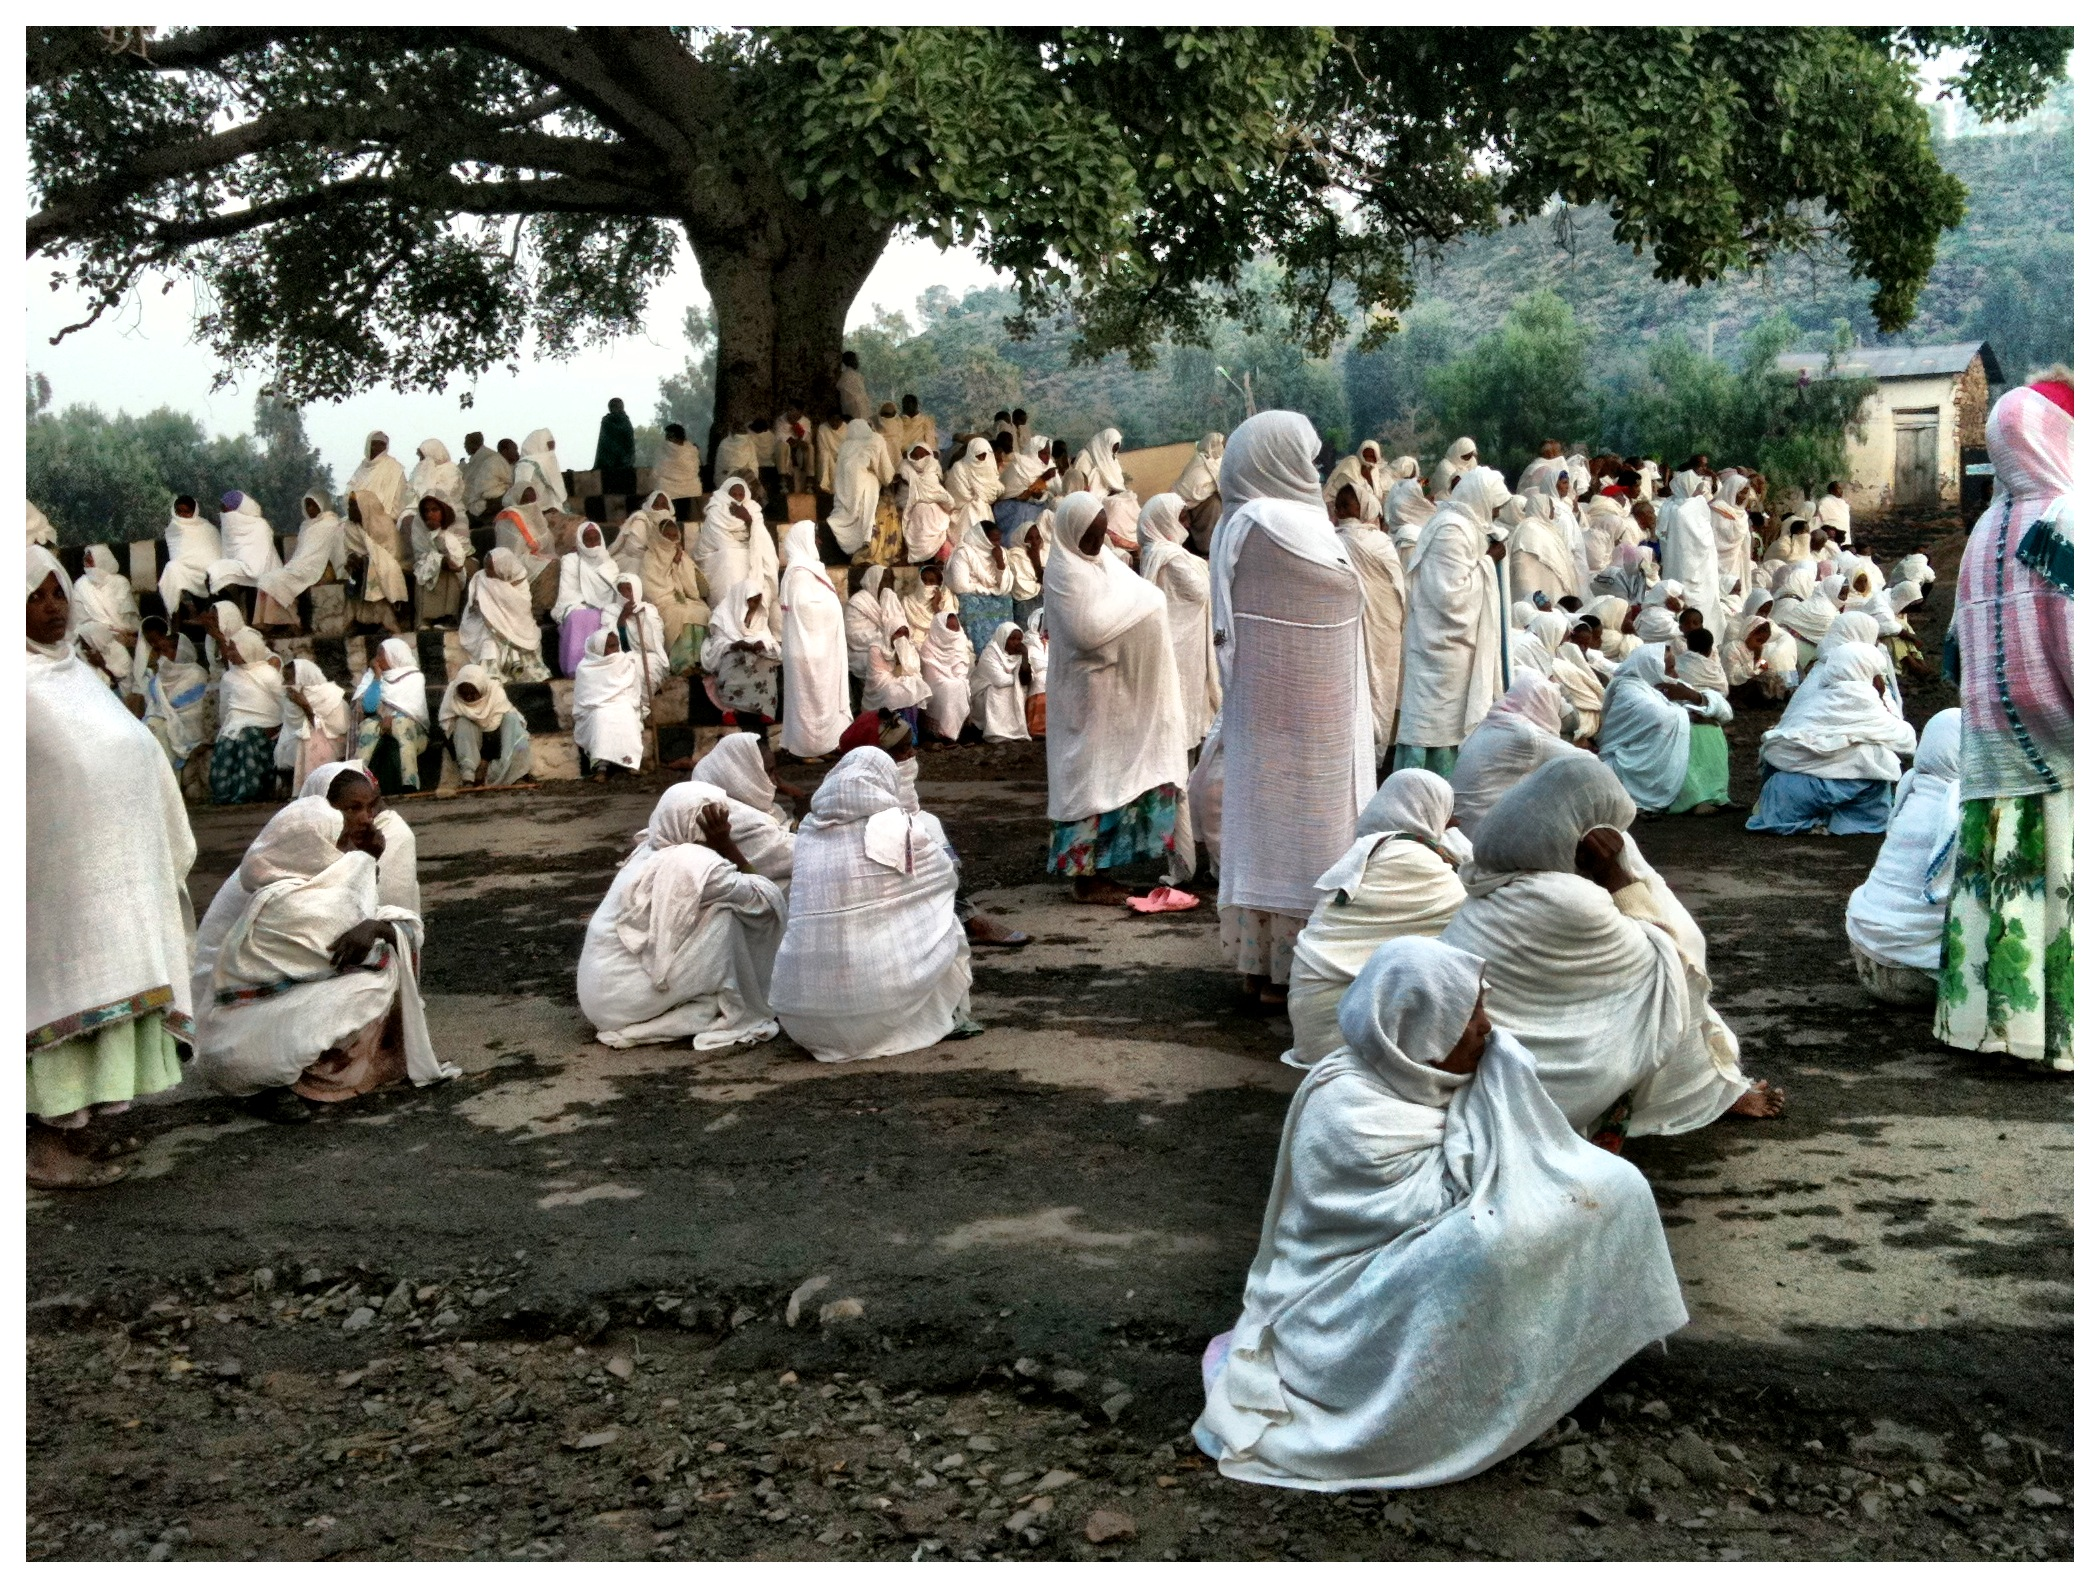 Early worship outside the Church of Our Lady Mary of Zion, Axum. This most important church in Ethiopia claims to contain the Ark of the Covenant.